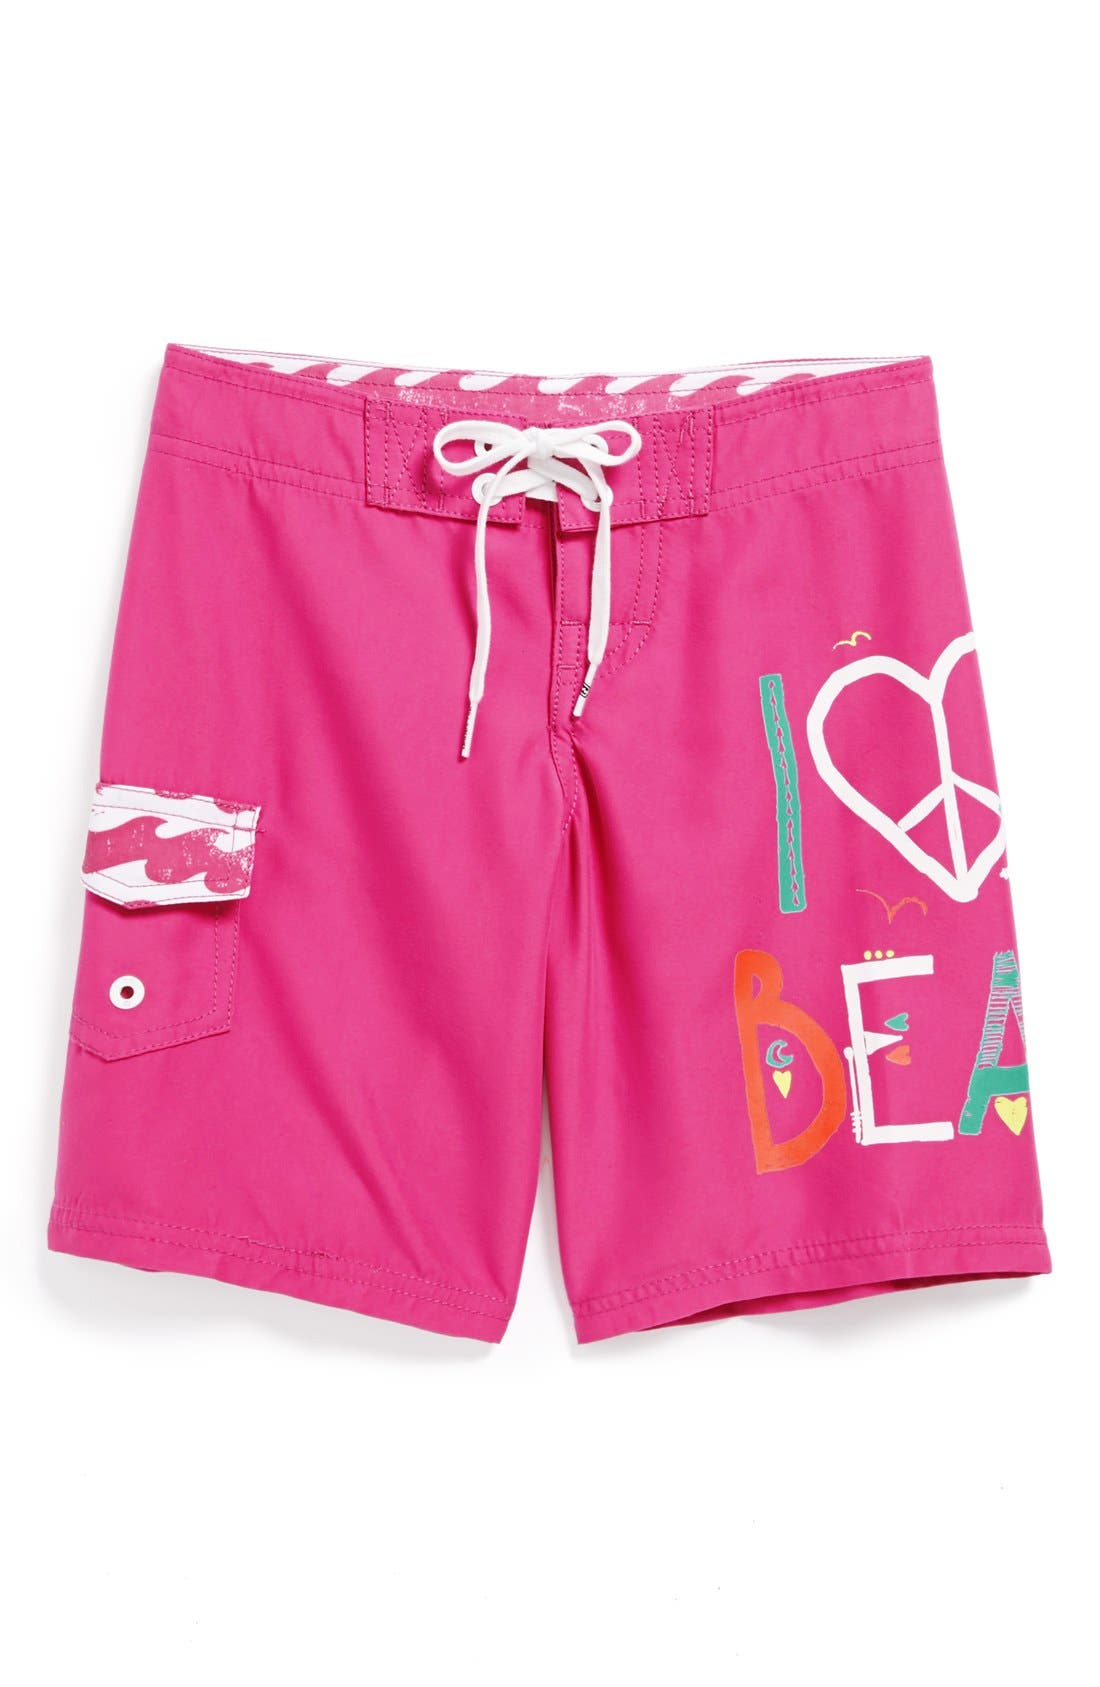 Main Image - Billabong 'I Love the Beach' Board Shorts (Big Girls)